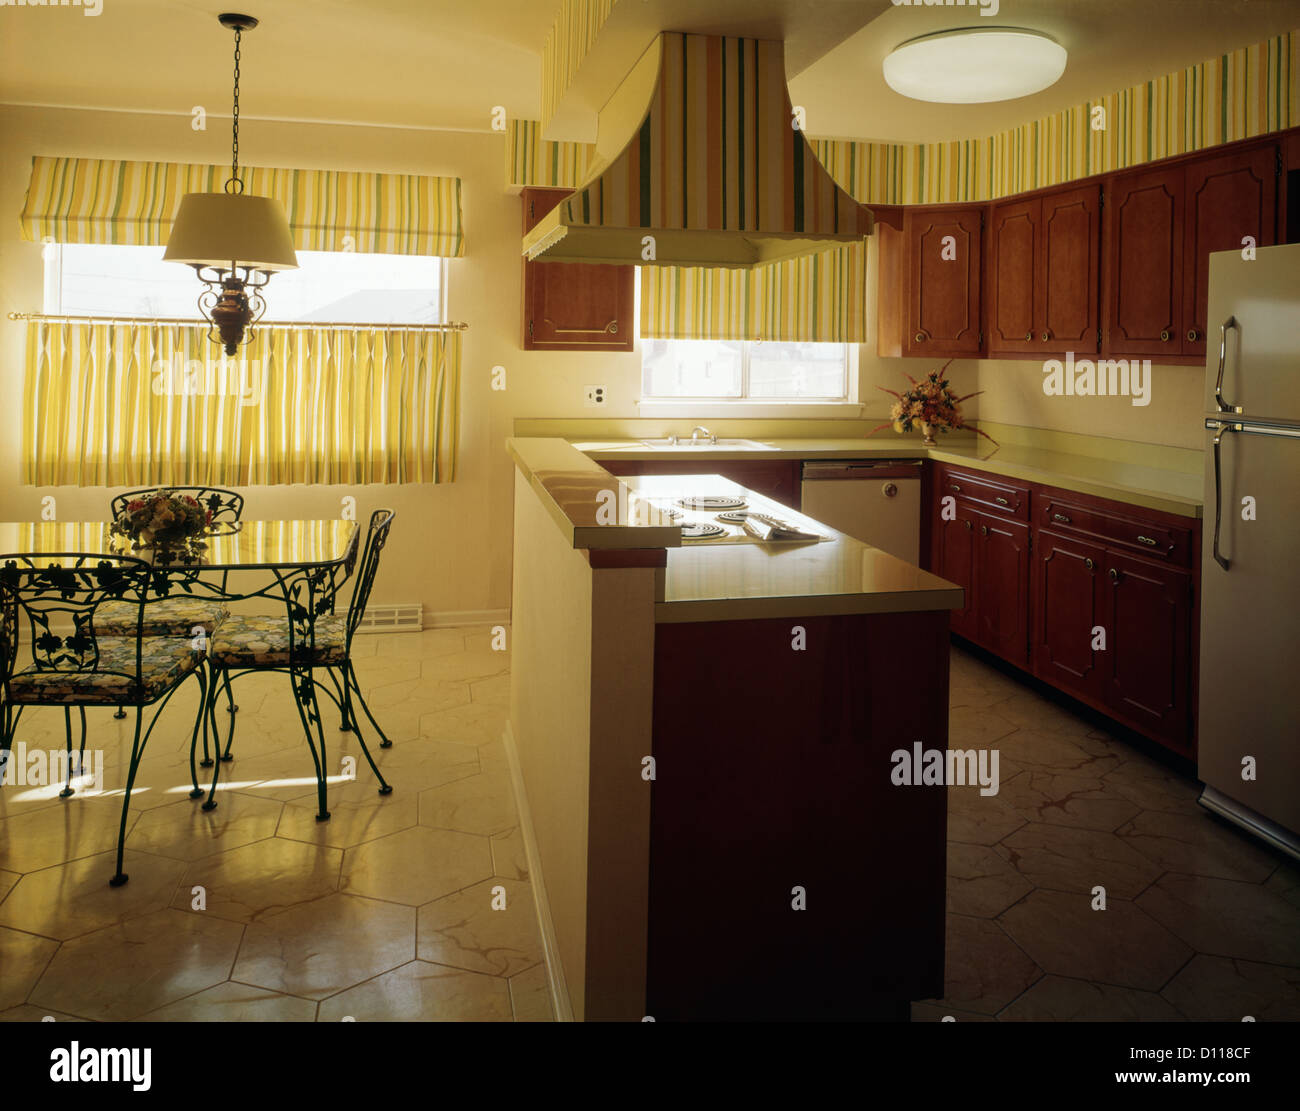 1970s KITCHEN AND DINING AREA WITH YELLOW STRIPED CURTAINS WALLPAPER AND  DARK WOODEN CABINETS